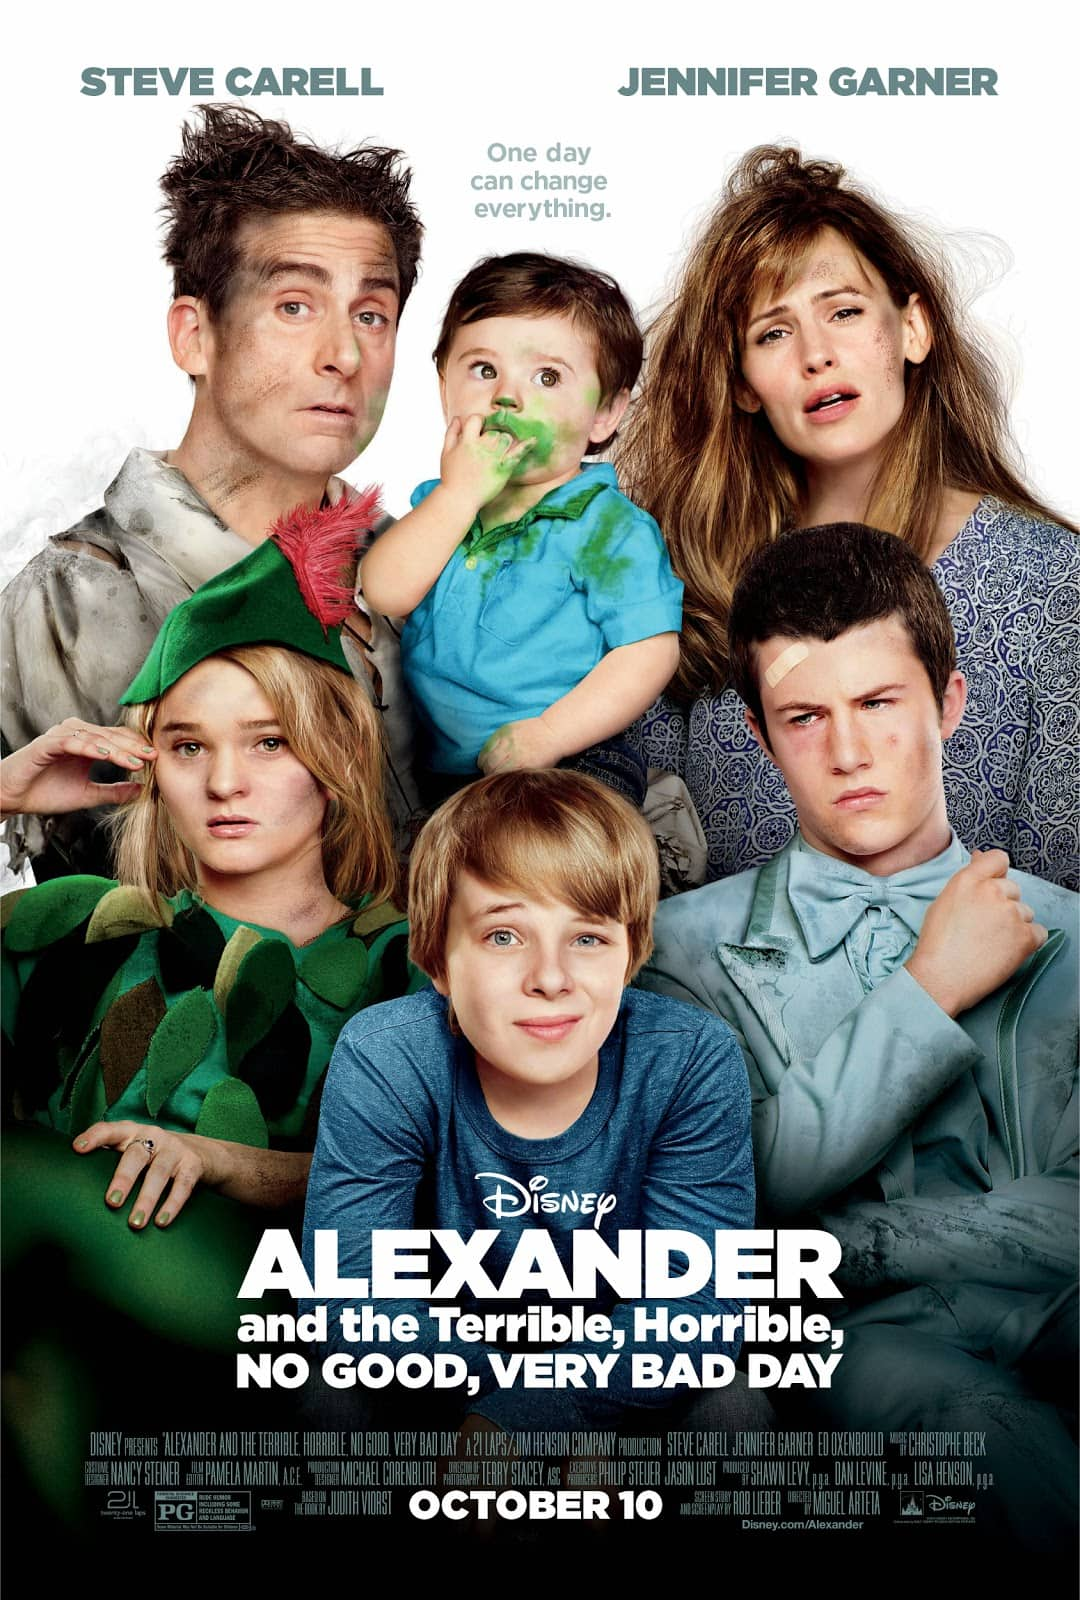 Giveaway: Disney's Alexander and The Terrible,Horrible, No Good ,Very Bad Day